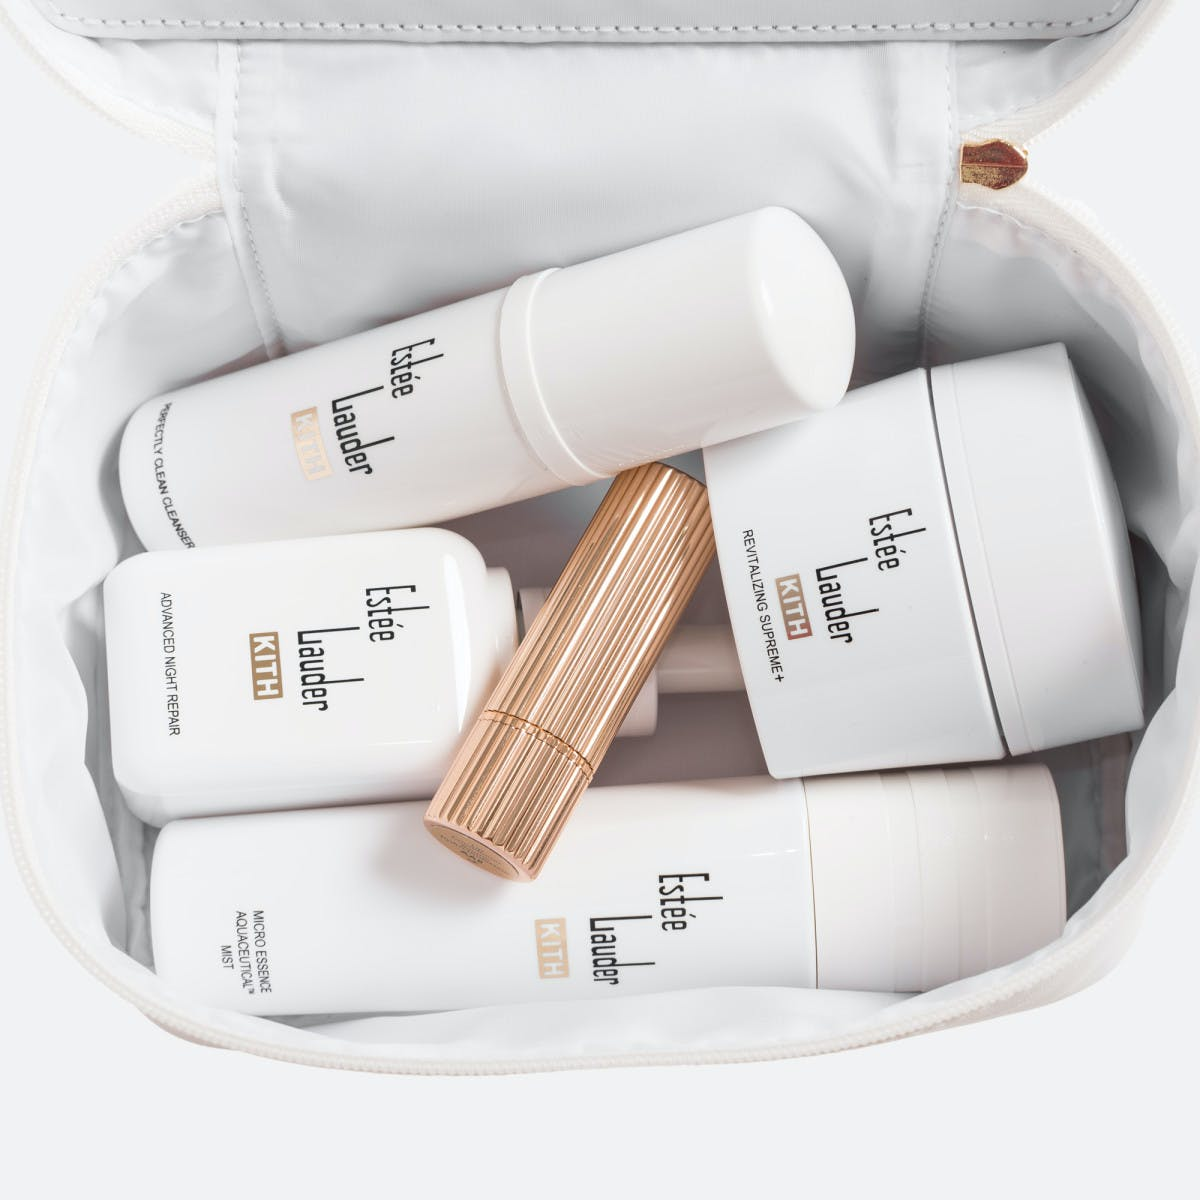 Kith Estee Lauder Products